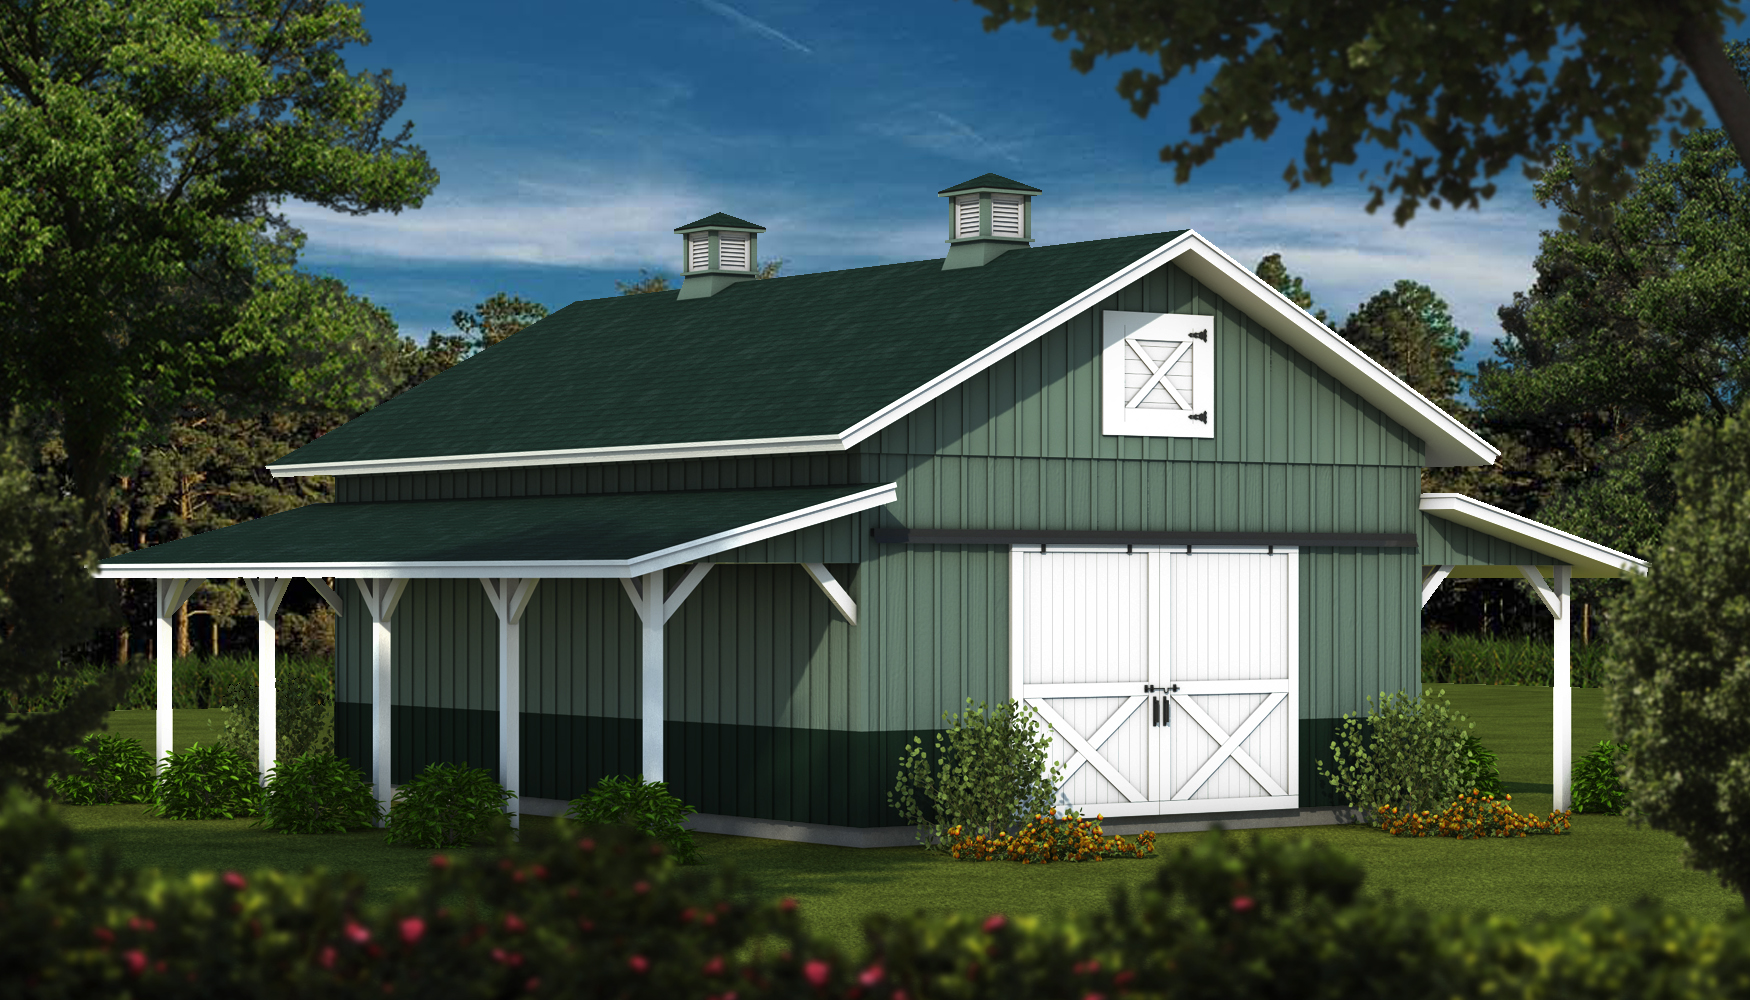 Southland launches classic wood barn kits for Barn frame homes